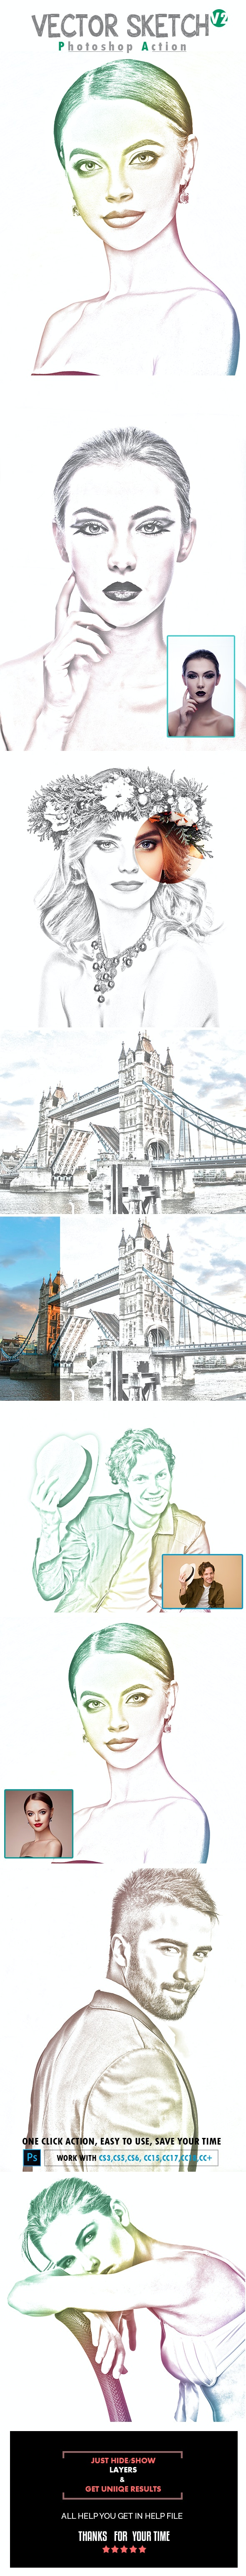 Vector Sketch V2 Photoshop Action - Photo Effects Actions